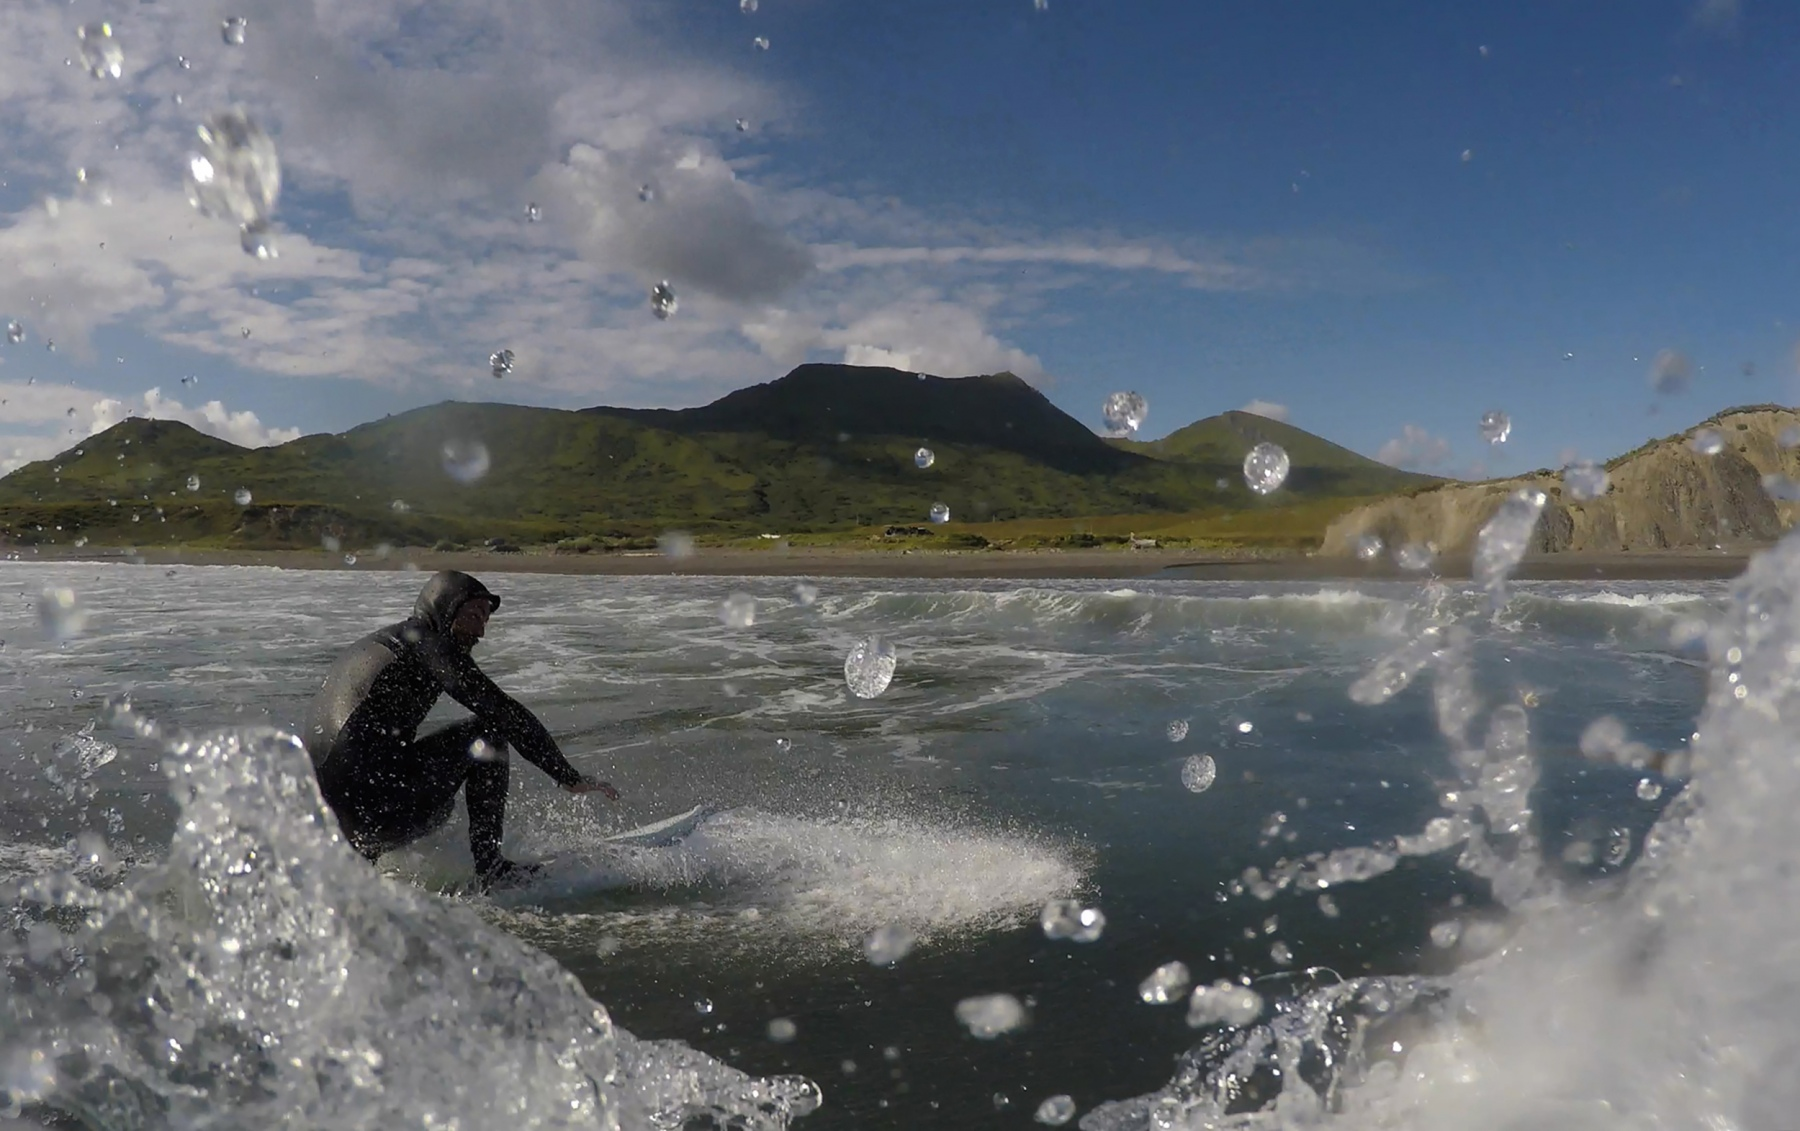 Scotty Russell surfs alone, Monday, July 27, 2020 at surfer's beach in Kodiak, Alaska. Russell surfs nearly every weekend he is off work. Peak surf season in Alaska is in the Fall and Spring when the waves are larger.